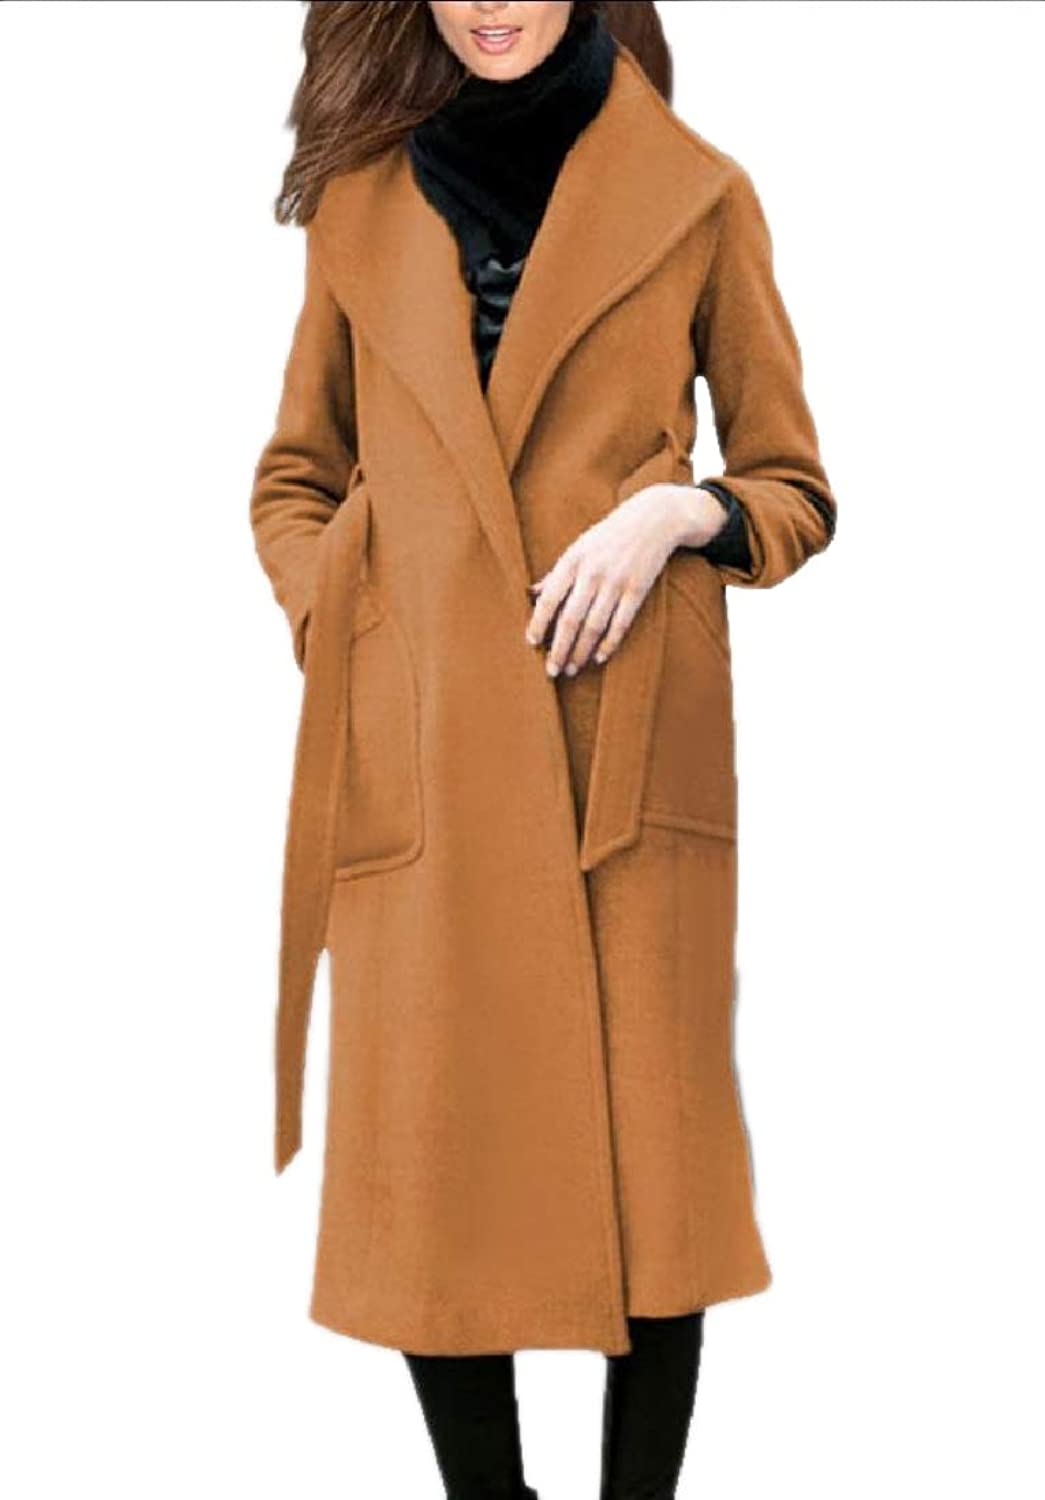 SpaceAngel Women Loose Solid color Woolen Trench Button Belted Pea Coat Jacket